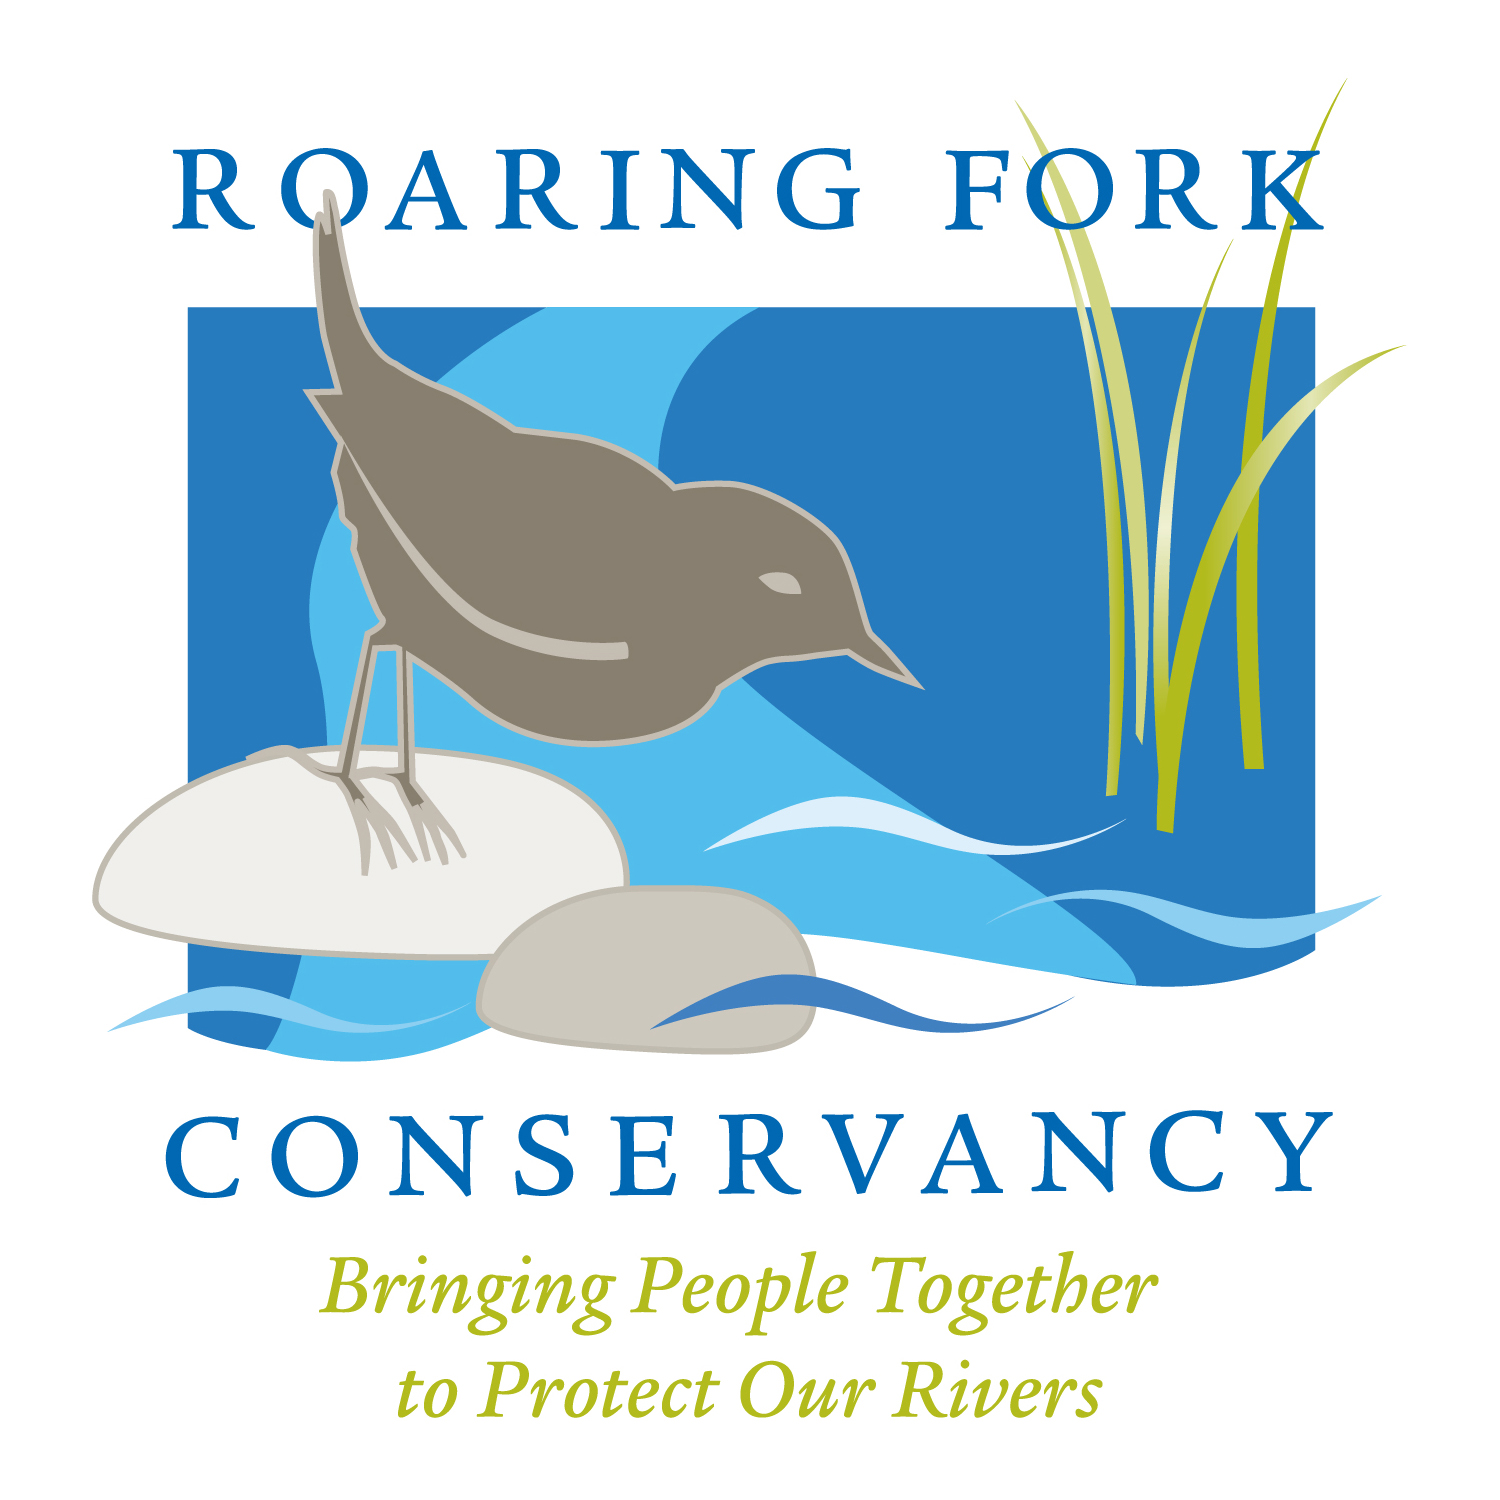 Roaring Fork Conservancy - bringing people together to protect our rivers